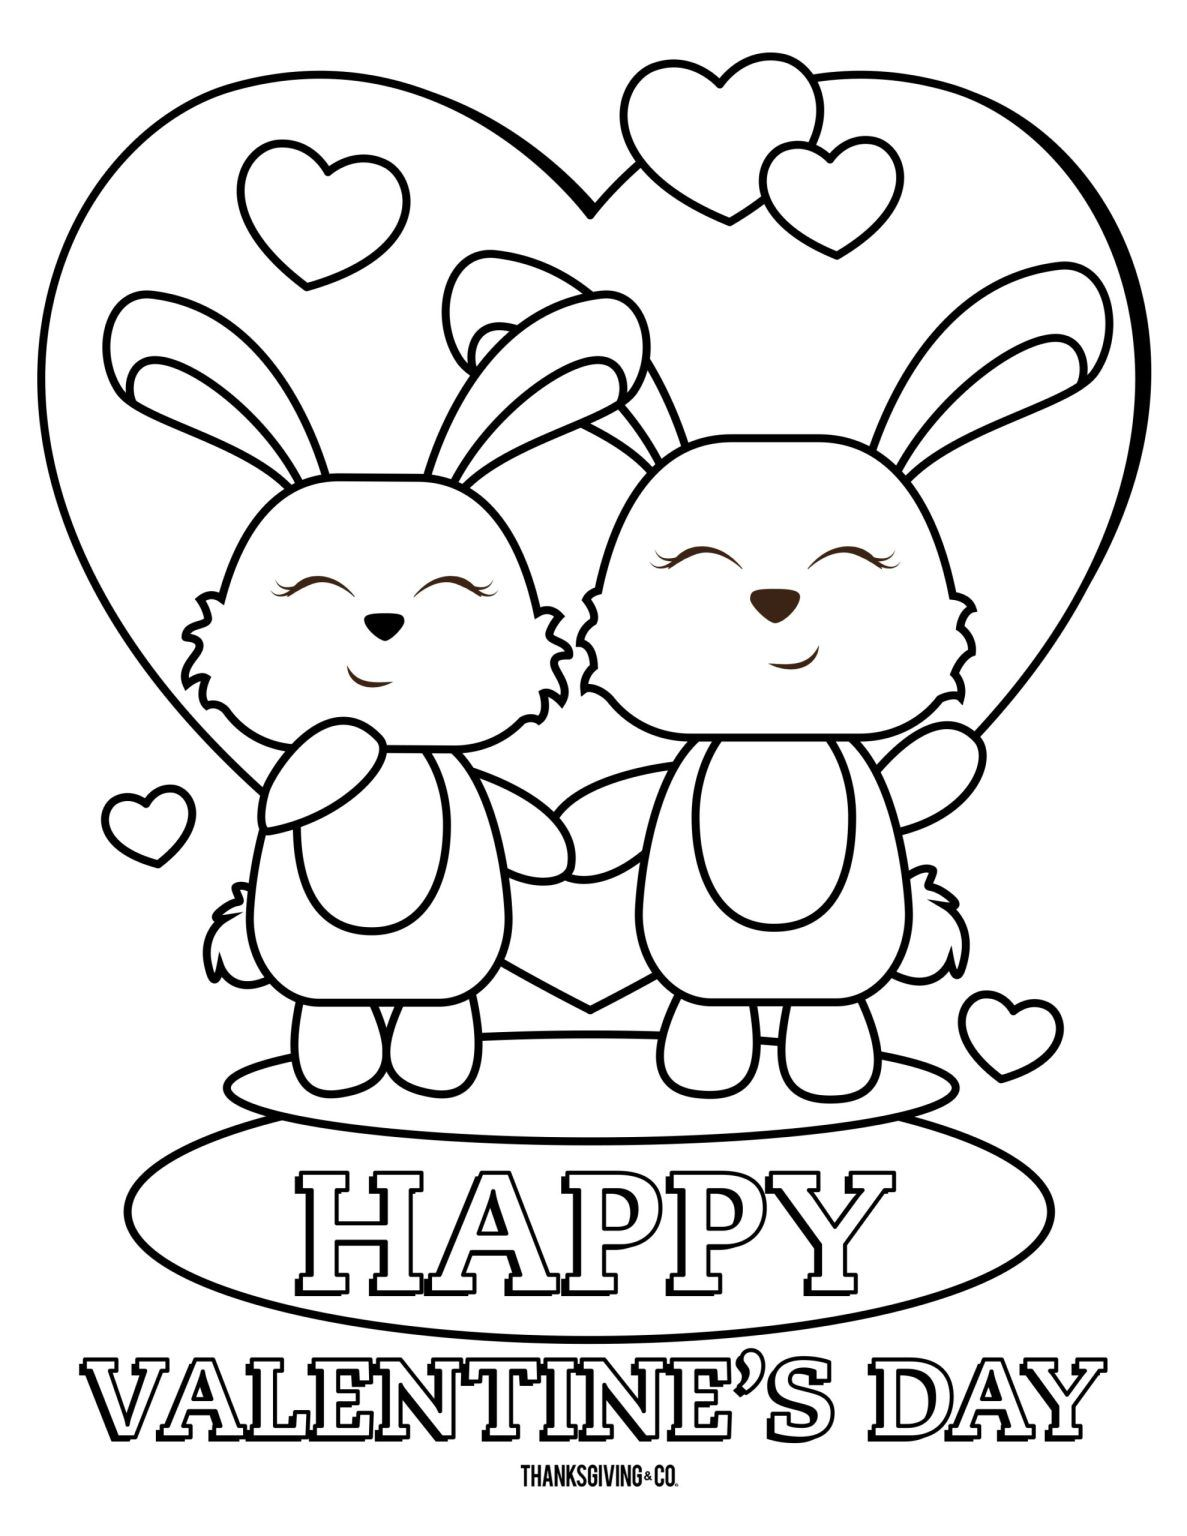 35 Sweet Valentines Coloring Pages To Enjoy Ohlade Valentine Coloring Sheets Bunny Coloring Pages Valentines Day Coloring Page